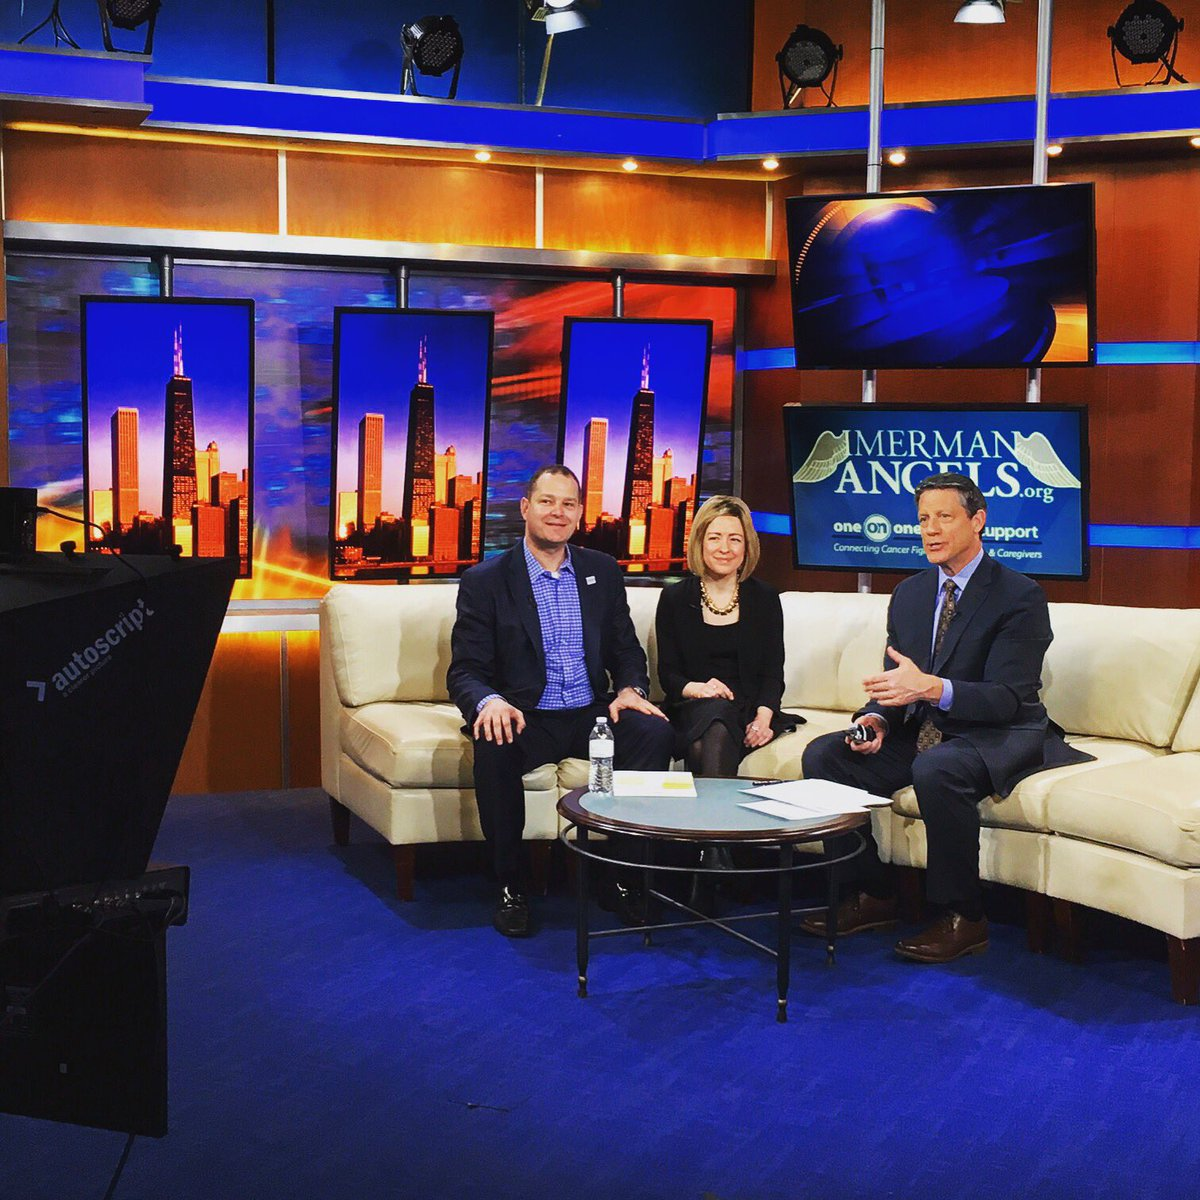 Thanks @fox32news for hosting Ben and Megan today! We've already gotten several calls from your viewers! #ThankYou https://t.co/so7c9wCBGf